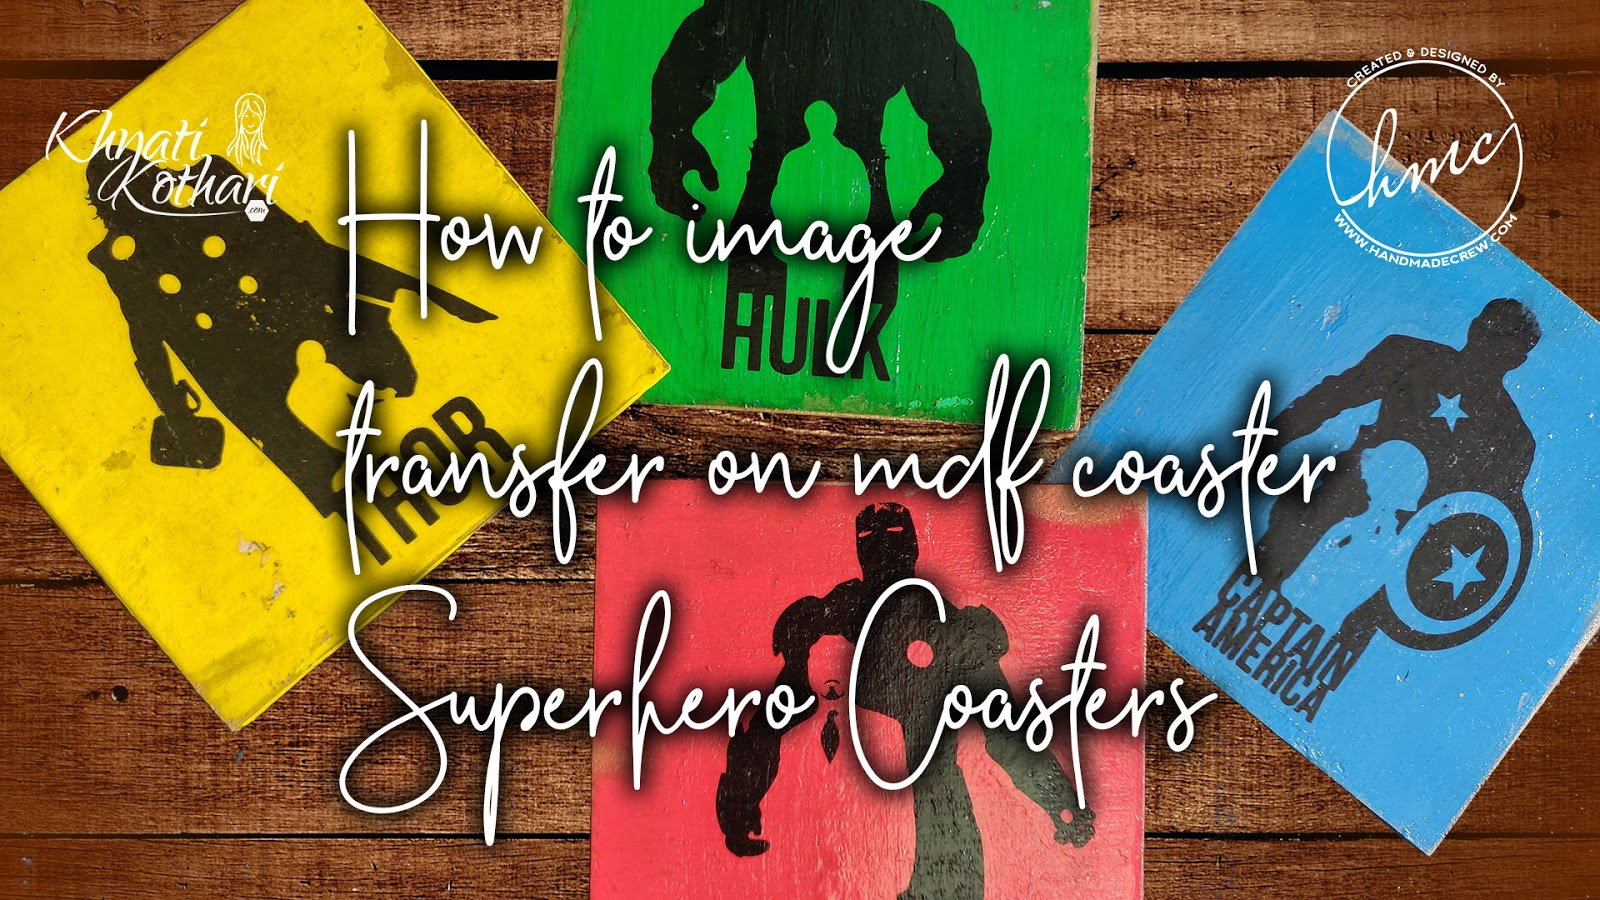 DIY superhero coasters using Image transfer technique with video tutorial 1